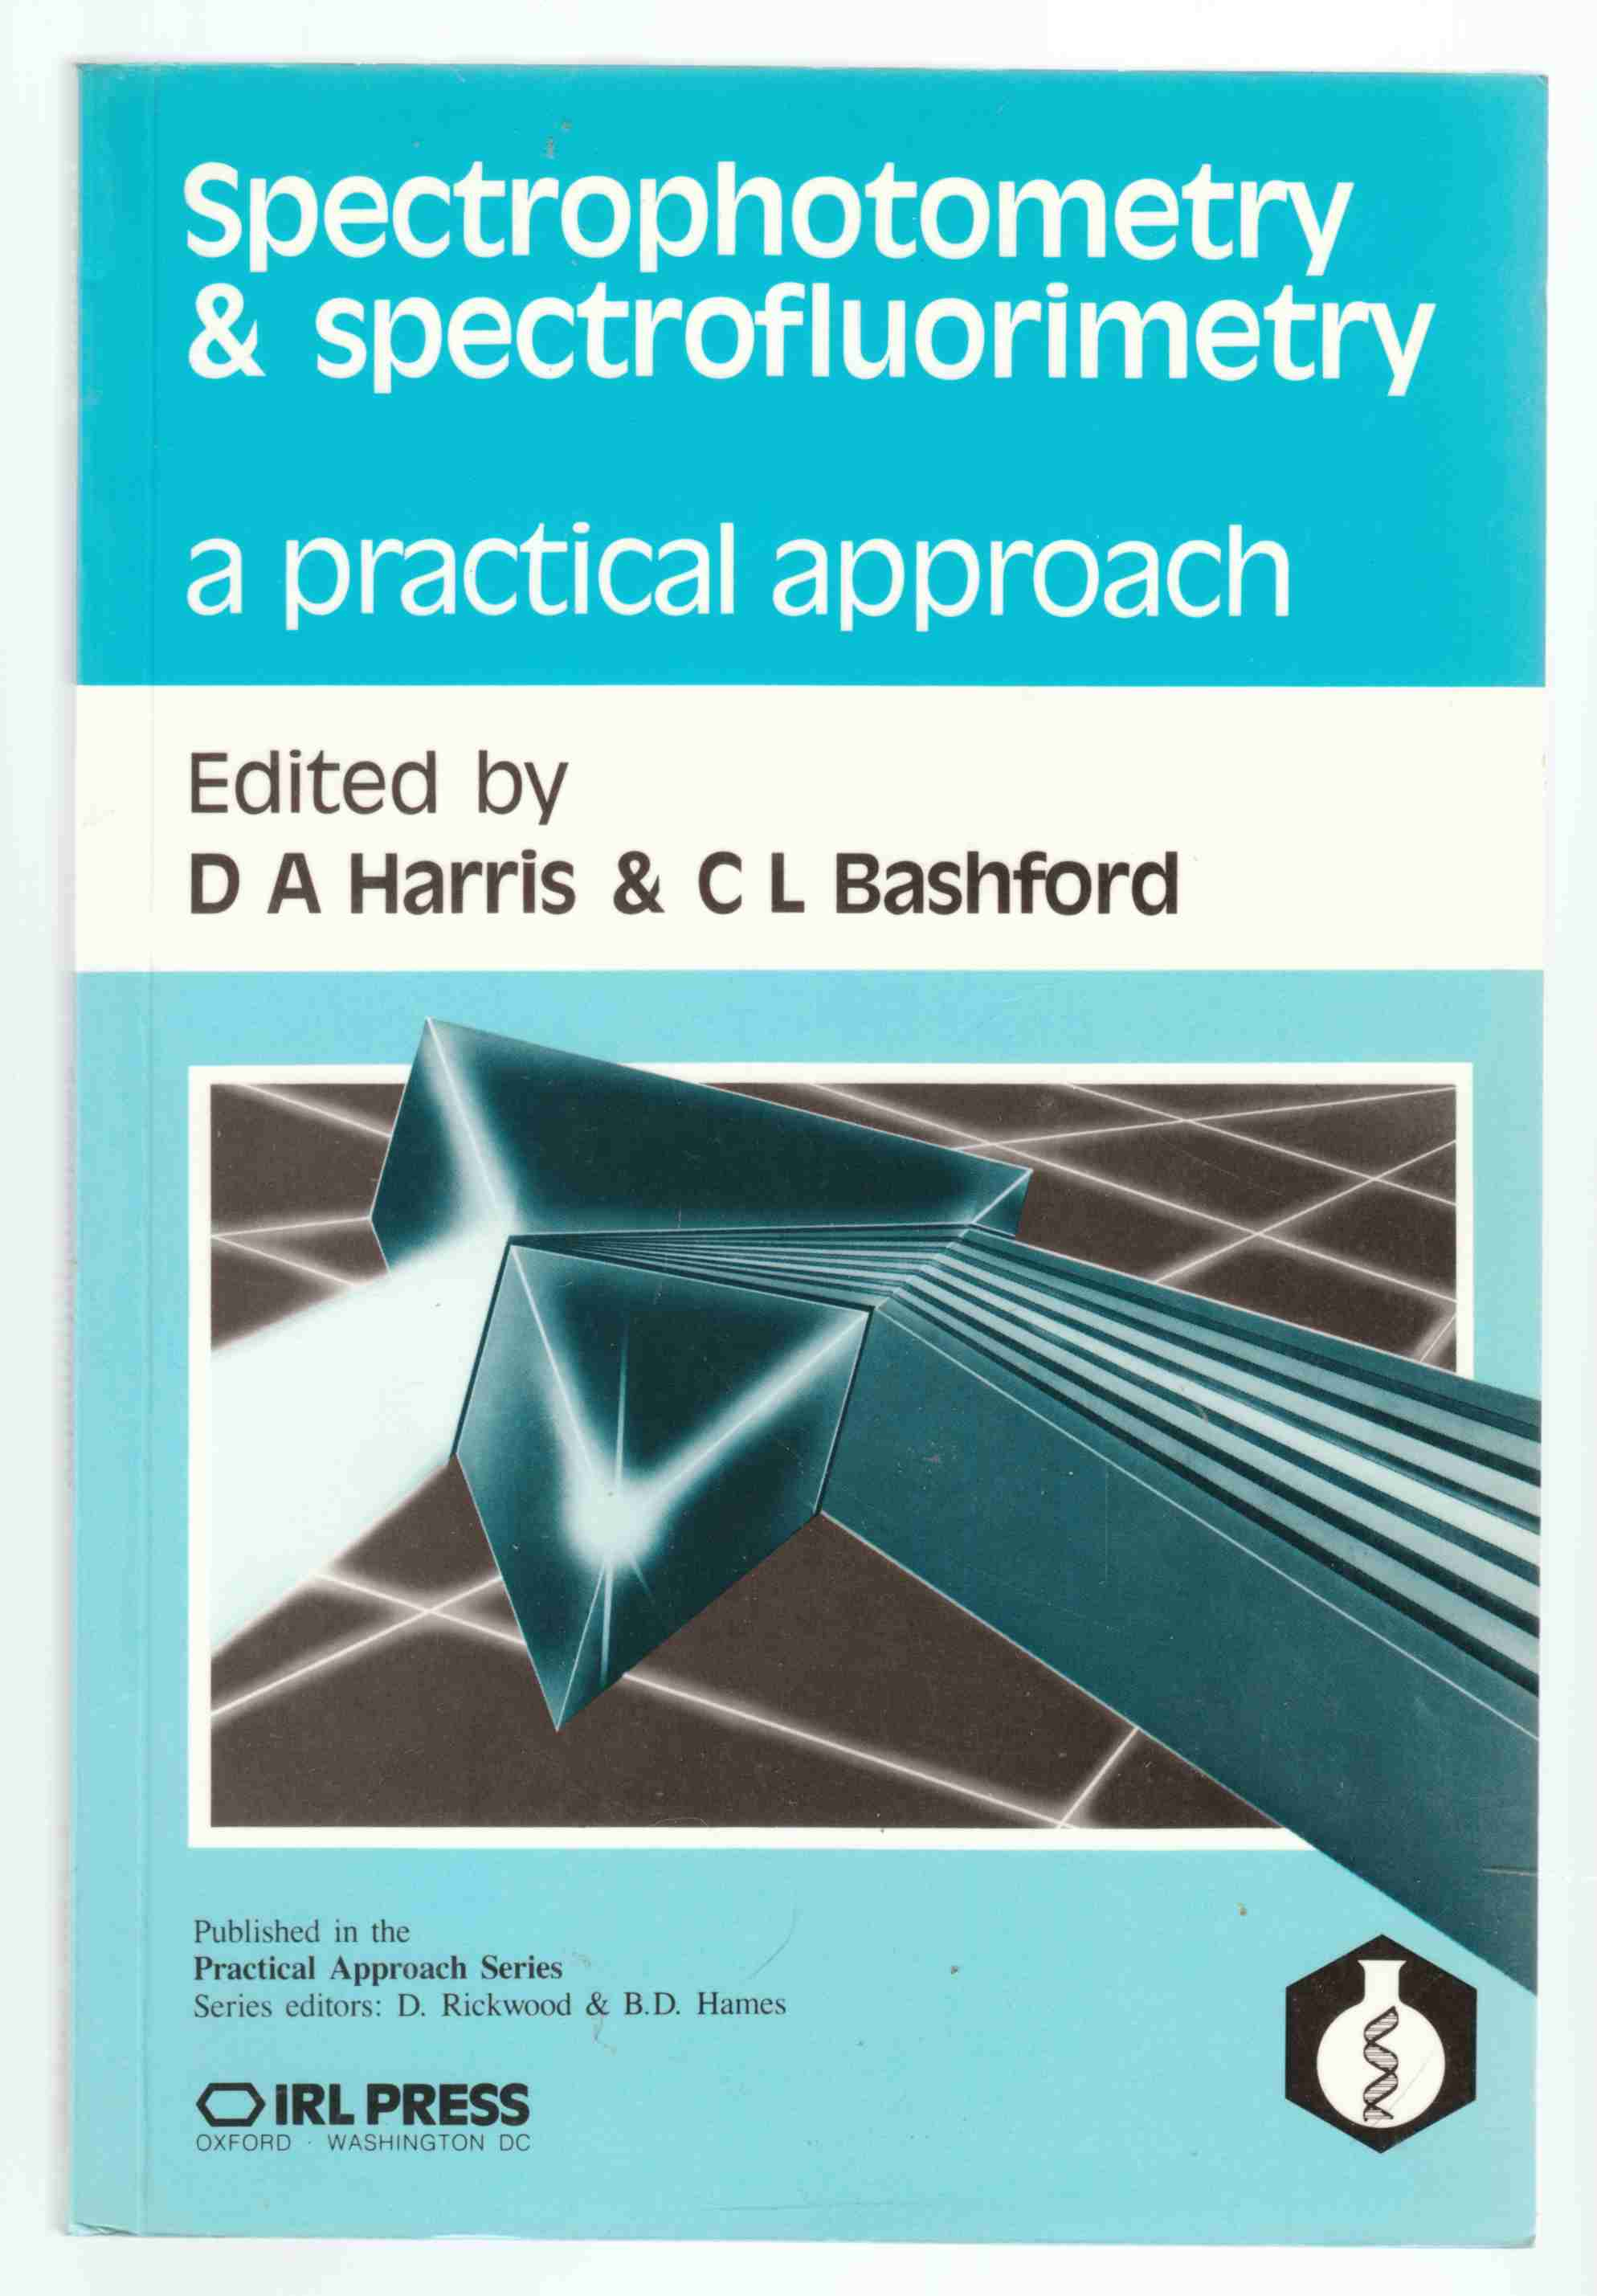 Image for Spectrophotometry & Spectrofluorimetry A Practical Approach